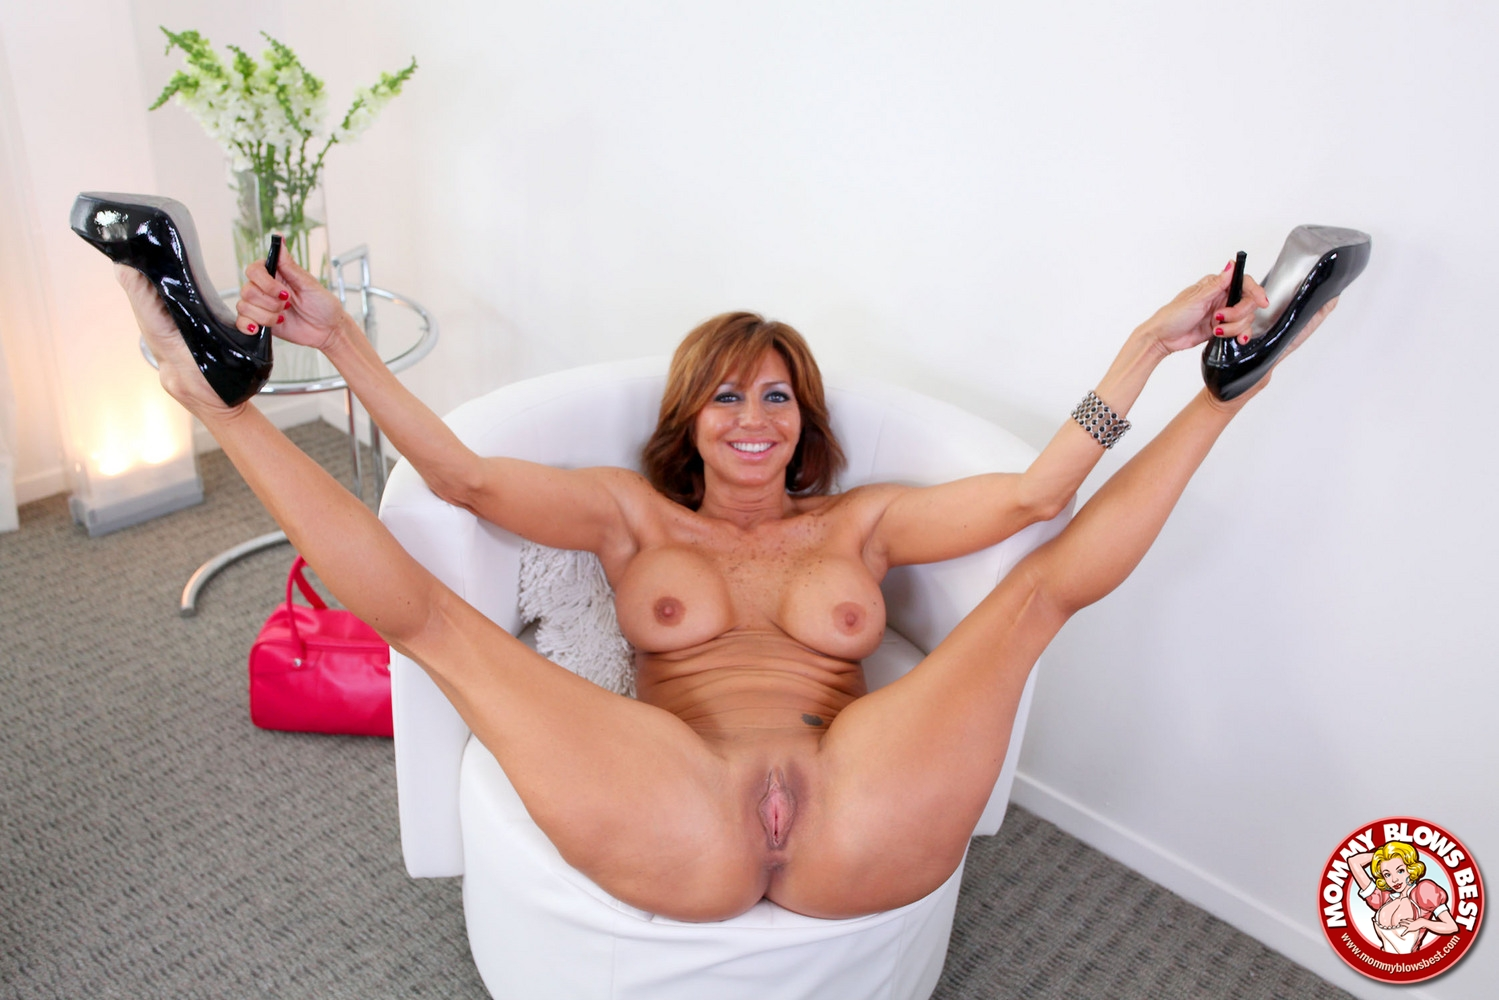 Latina mom back for more dick in the living room 1